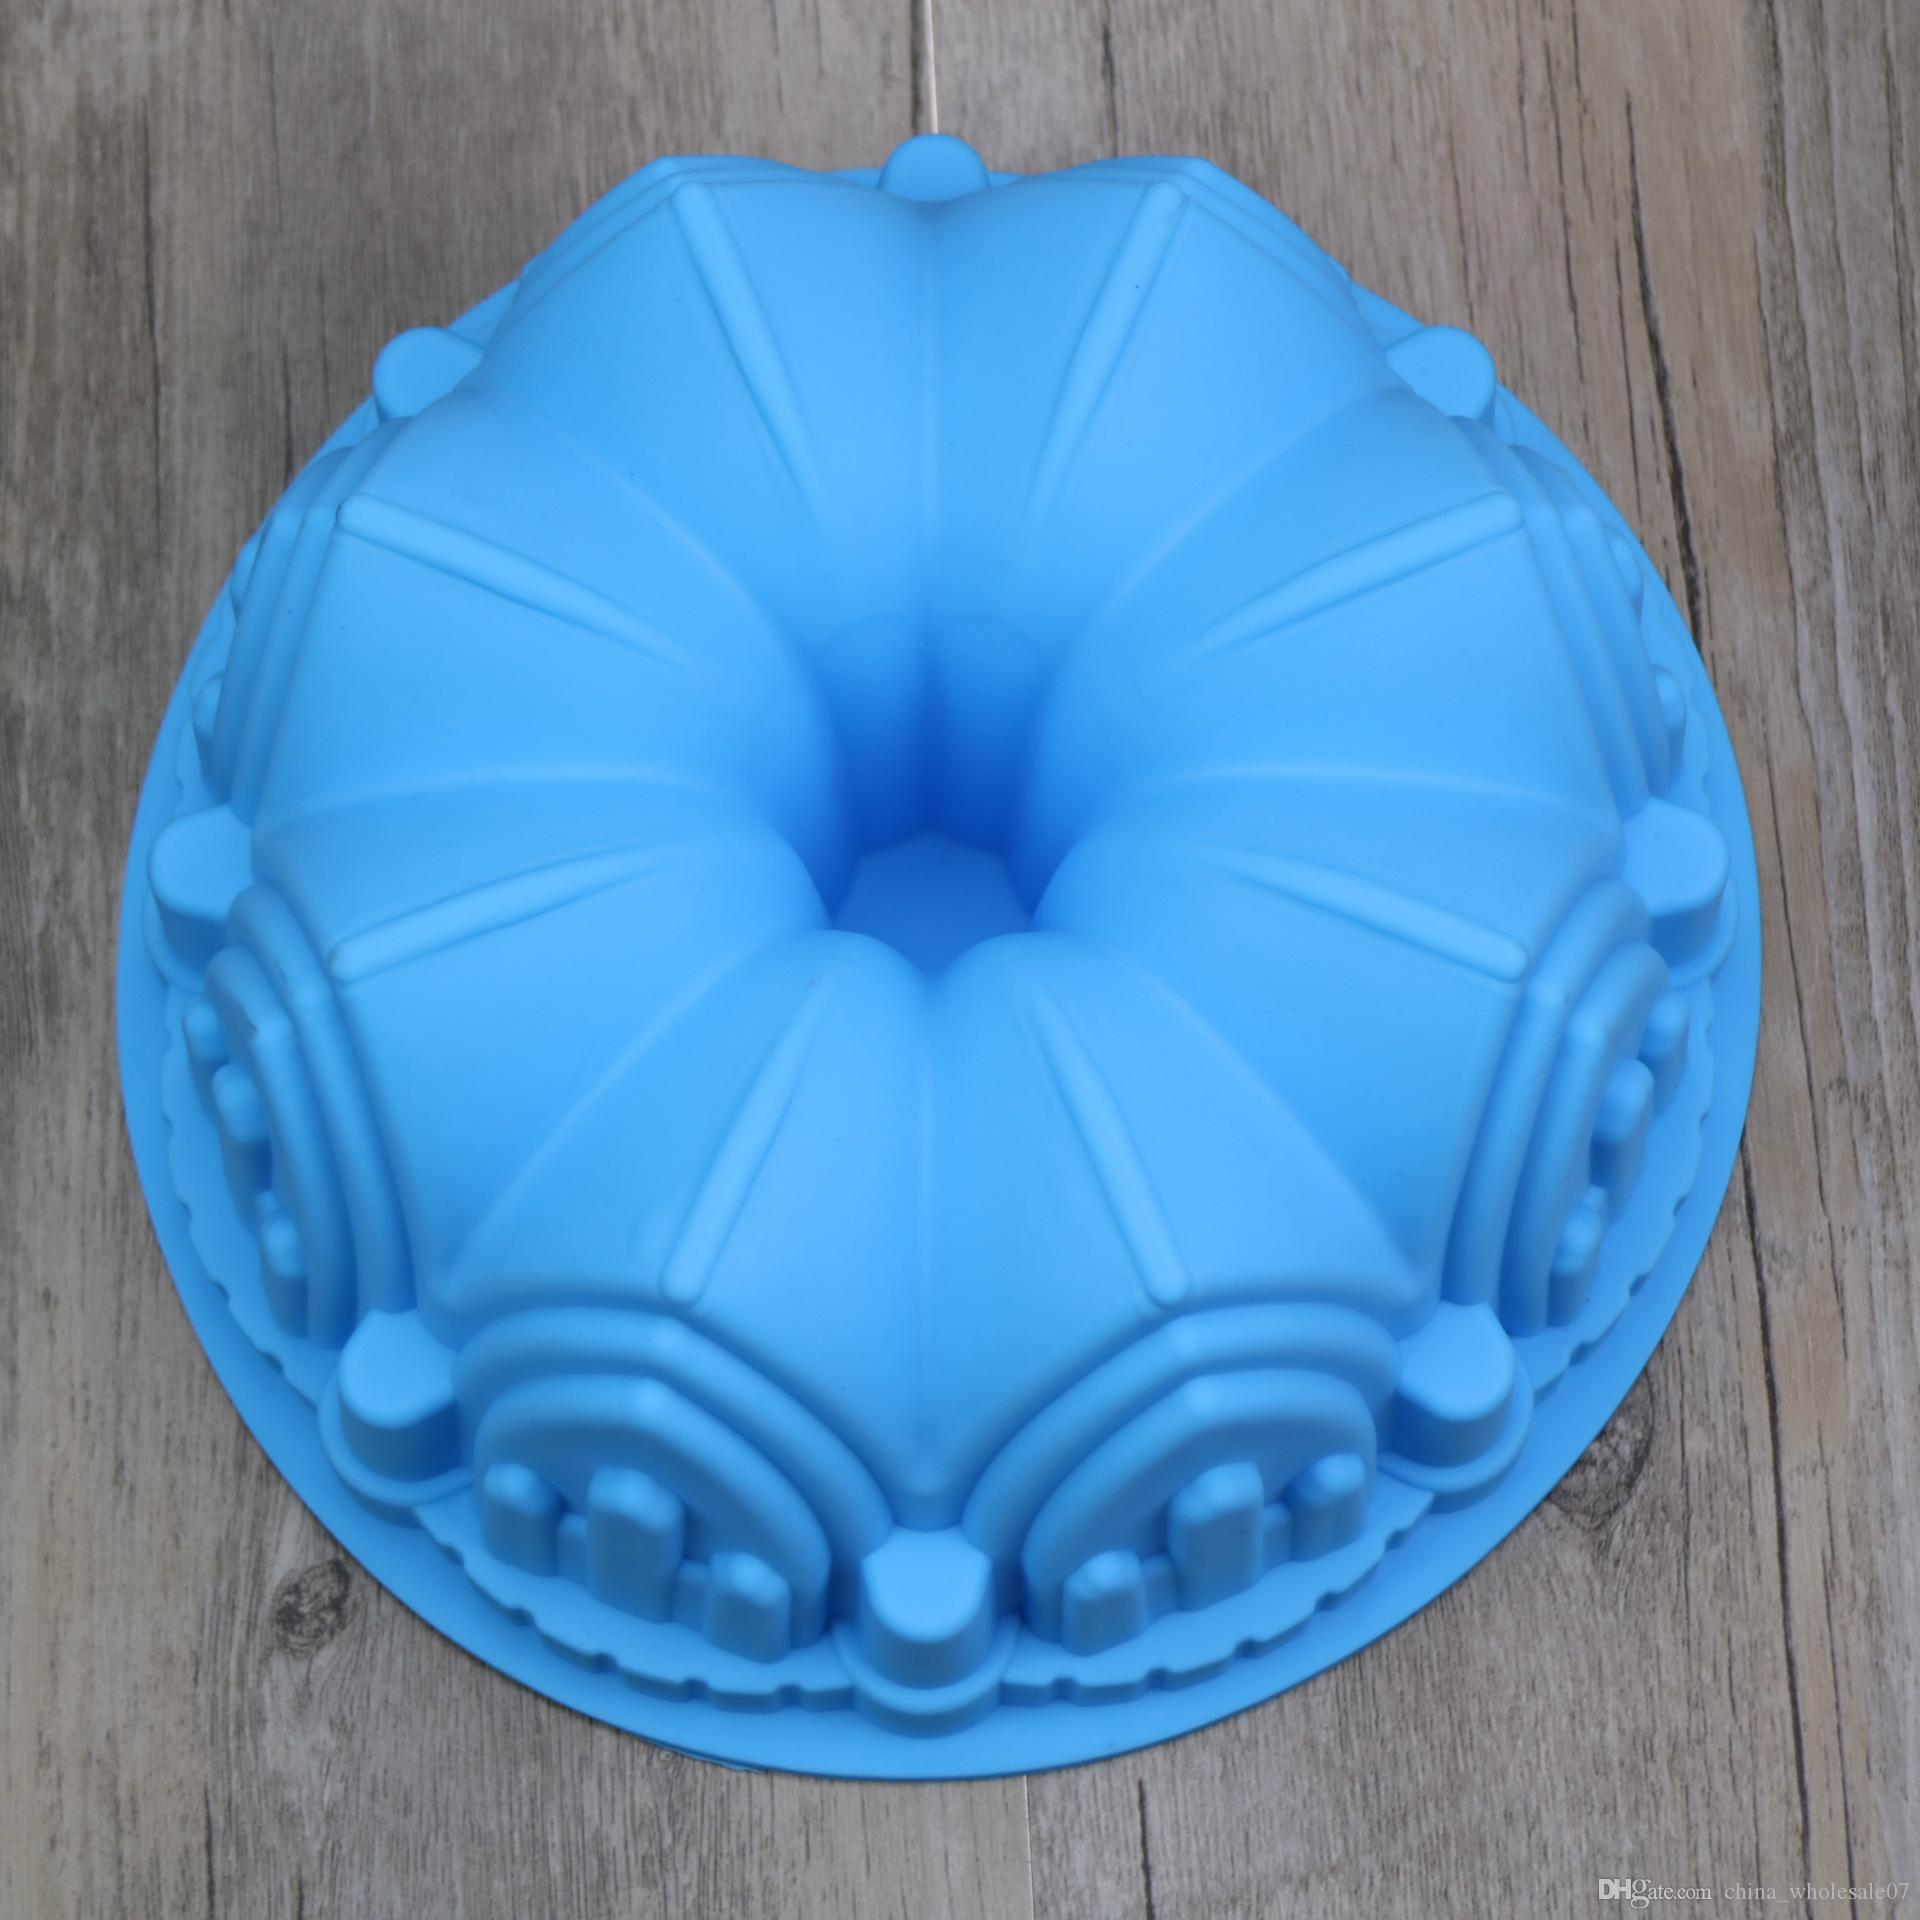 2018 Big Crown Silicone Cake Mold 3d Birthday Cake Decorating Tools